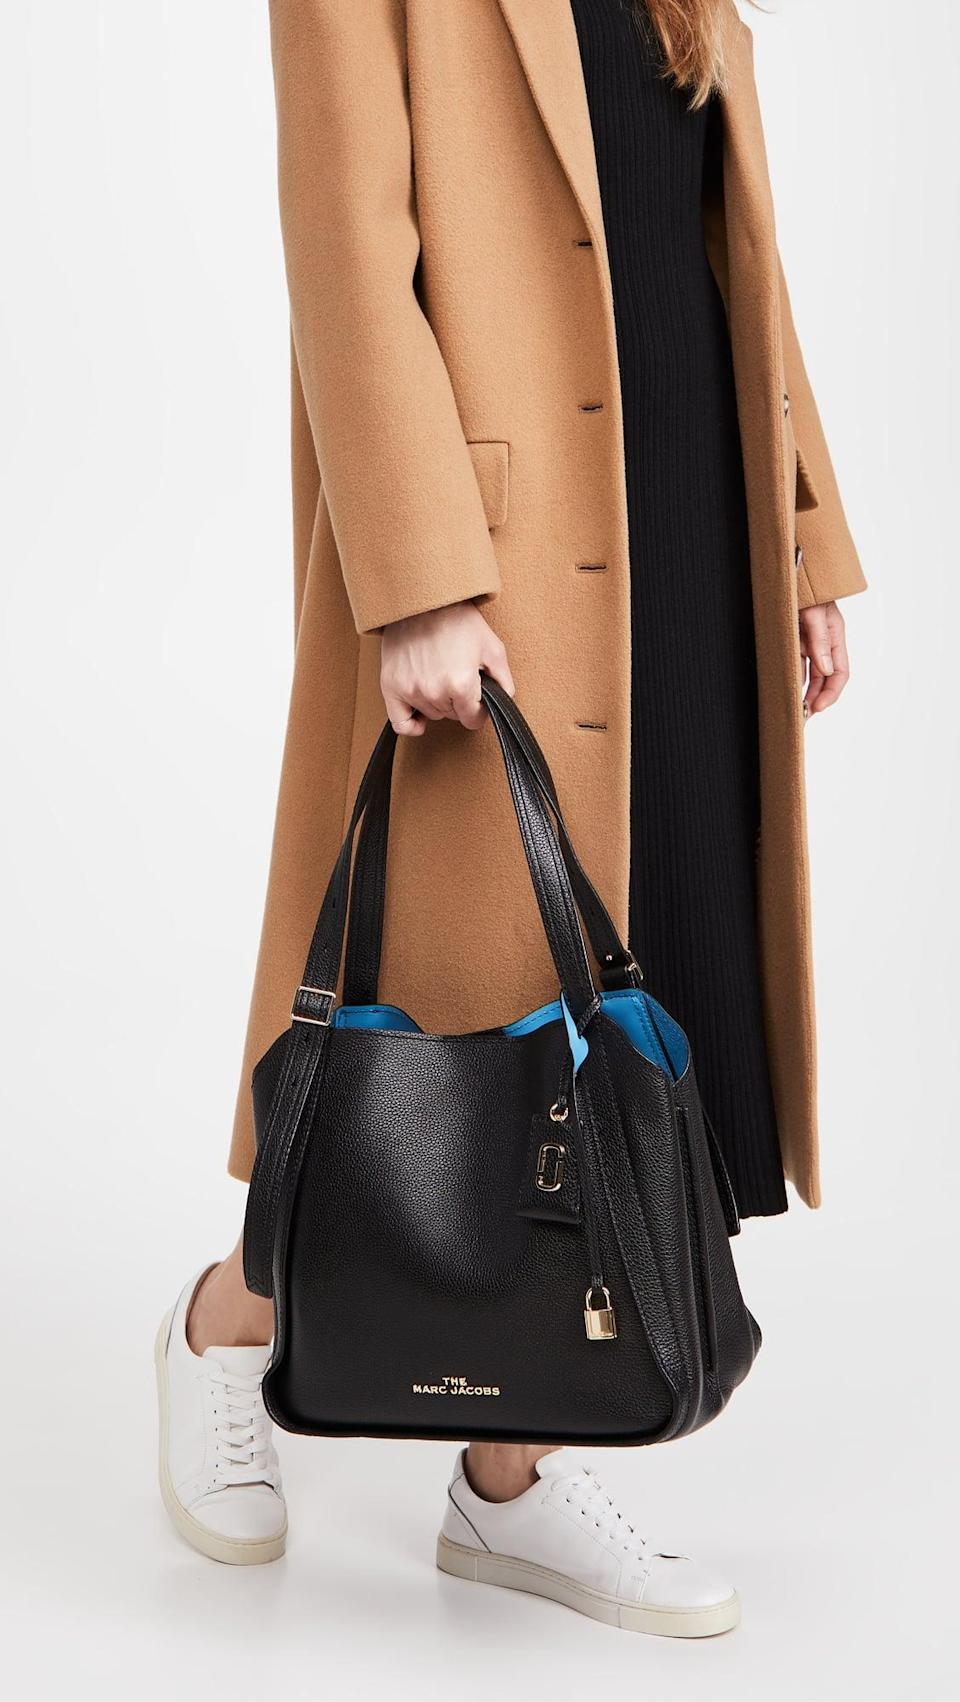 <p>This <span>Marc Jacobs The Director Tote Bag</span> ($450) is two-toned, which makes it a bit more unique.</p>